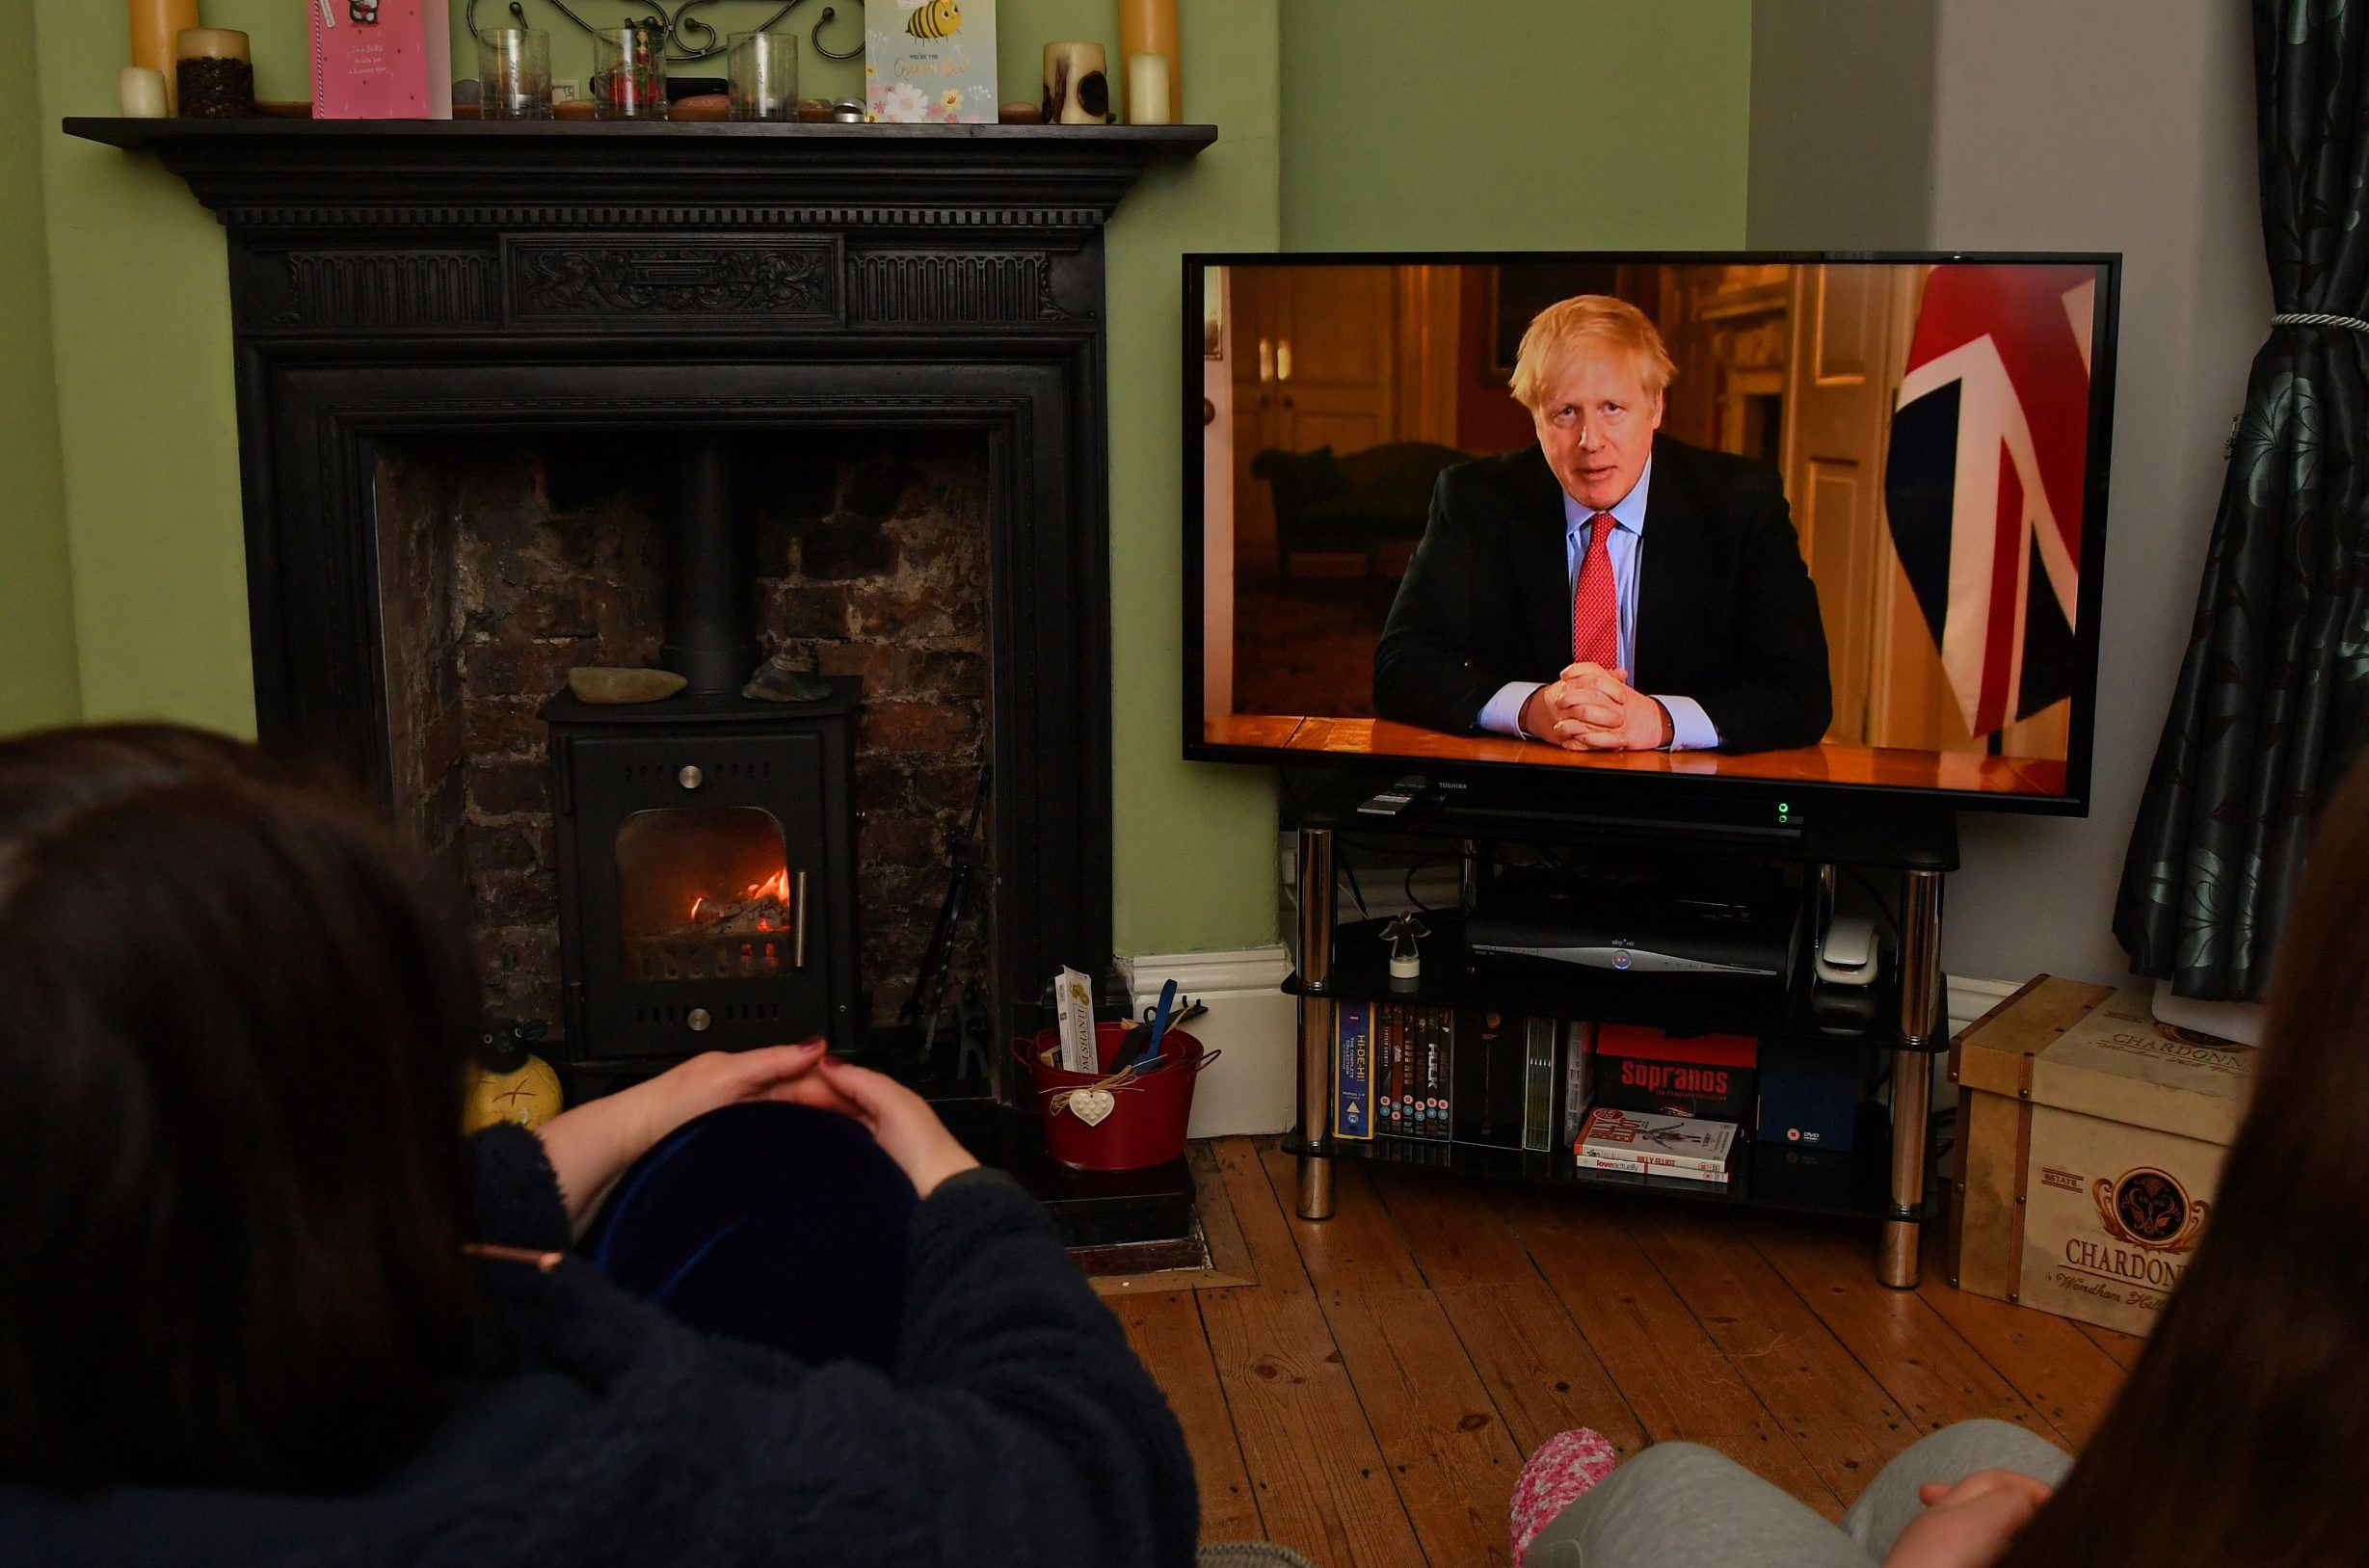 Members of a family listen as Britain's Prime Minister Boris Johnson makes a televised address to the nation from inside 10 Downing Street in London, with the latest instructions to stay at home to help contain the Covid-19 pandemic, from a house in Liverpool, north west England on March 23, 2020. - Britain on Monday ordered a three-week lockdown to tackle the spread of coronavirus, shutting